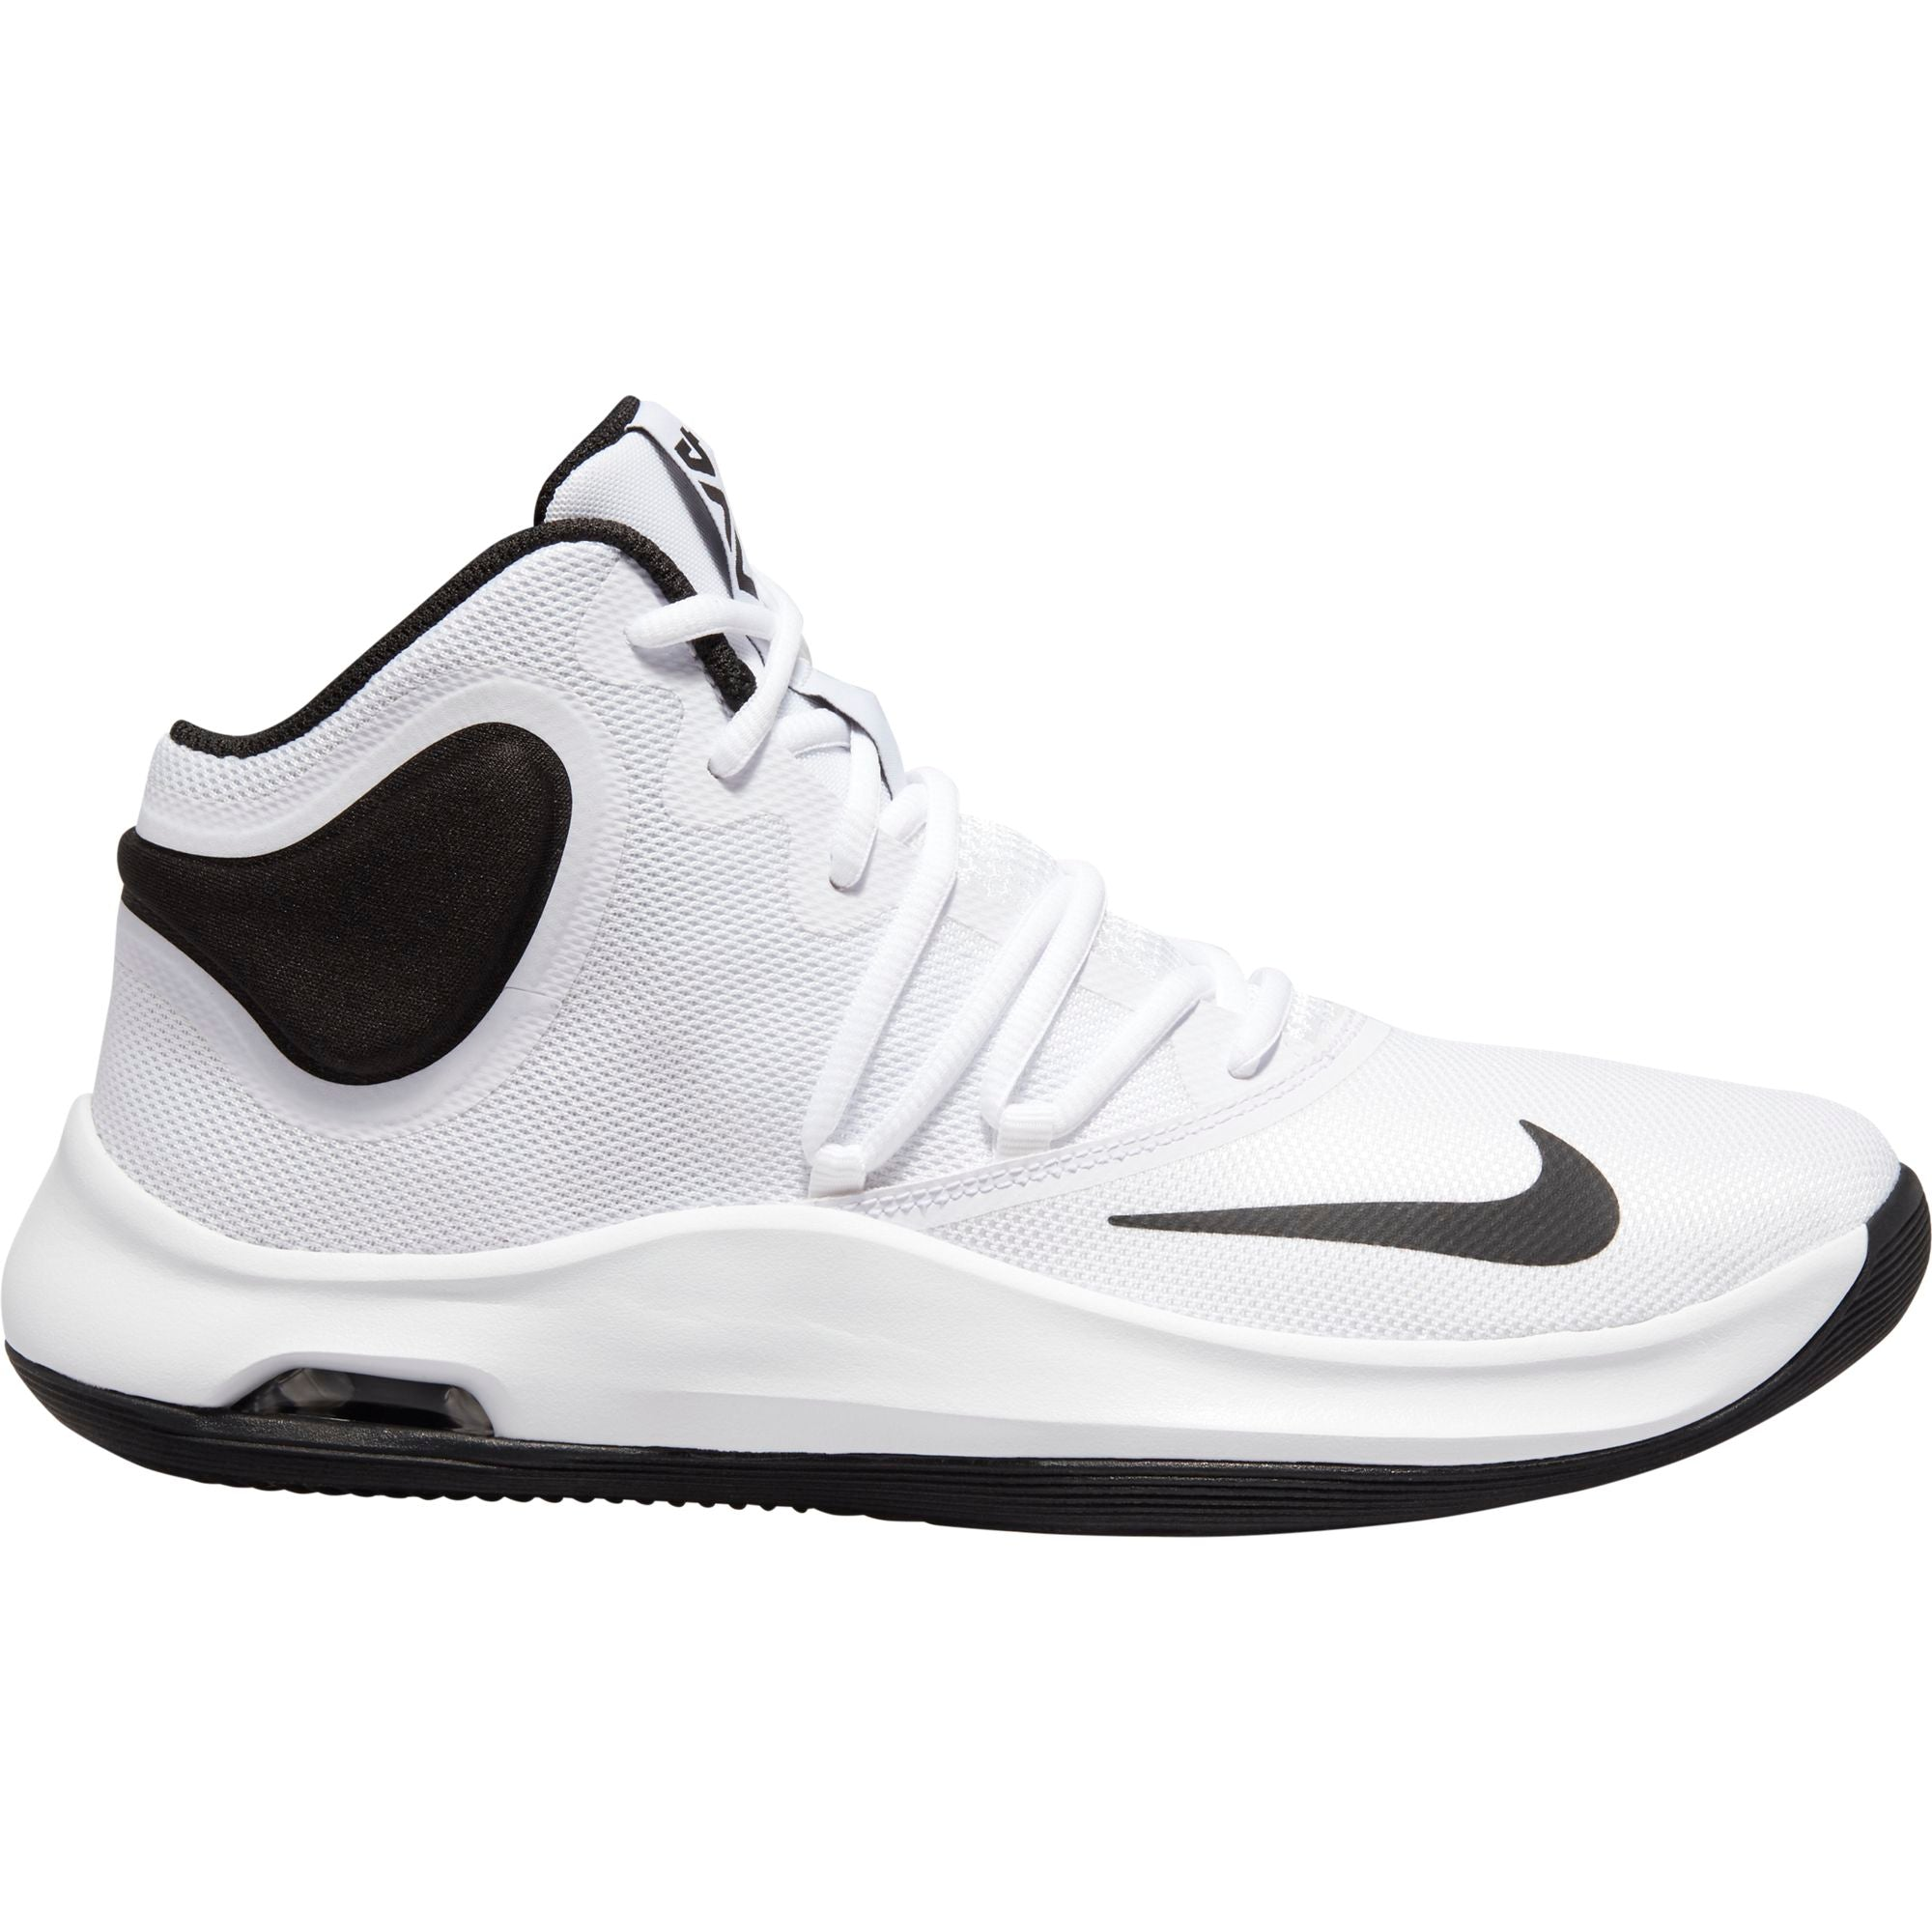 Nike Basketball Air Versitile IV Boot/Shoe - NK-AT1199-100